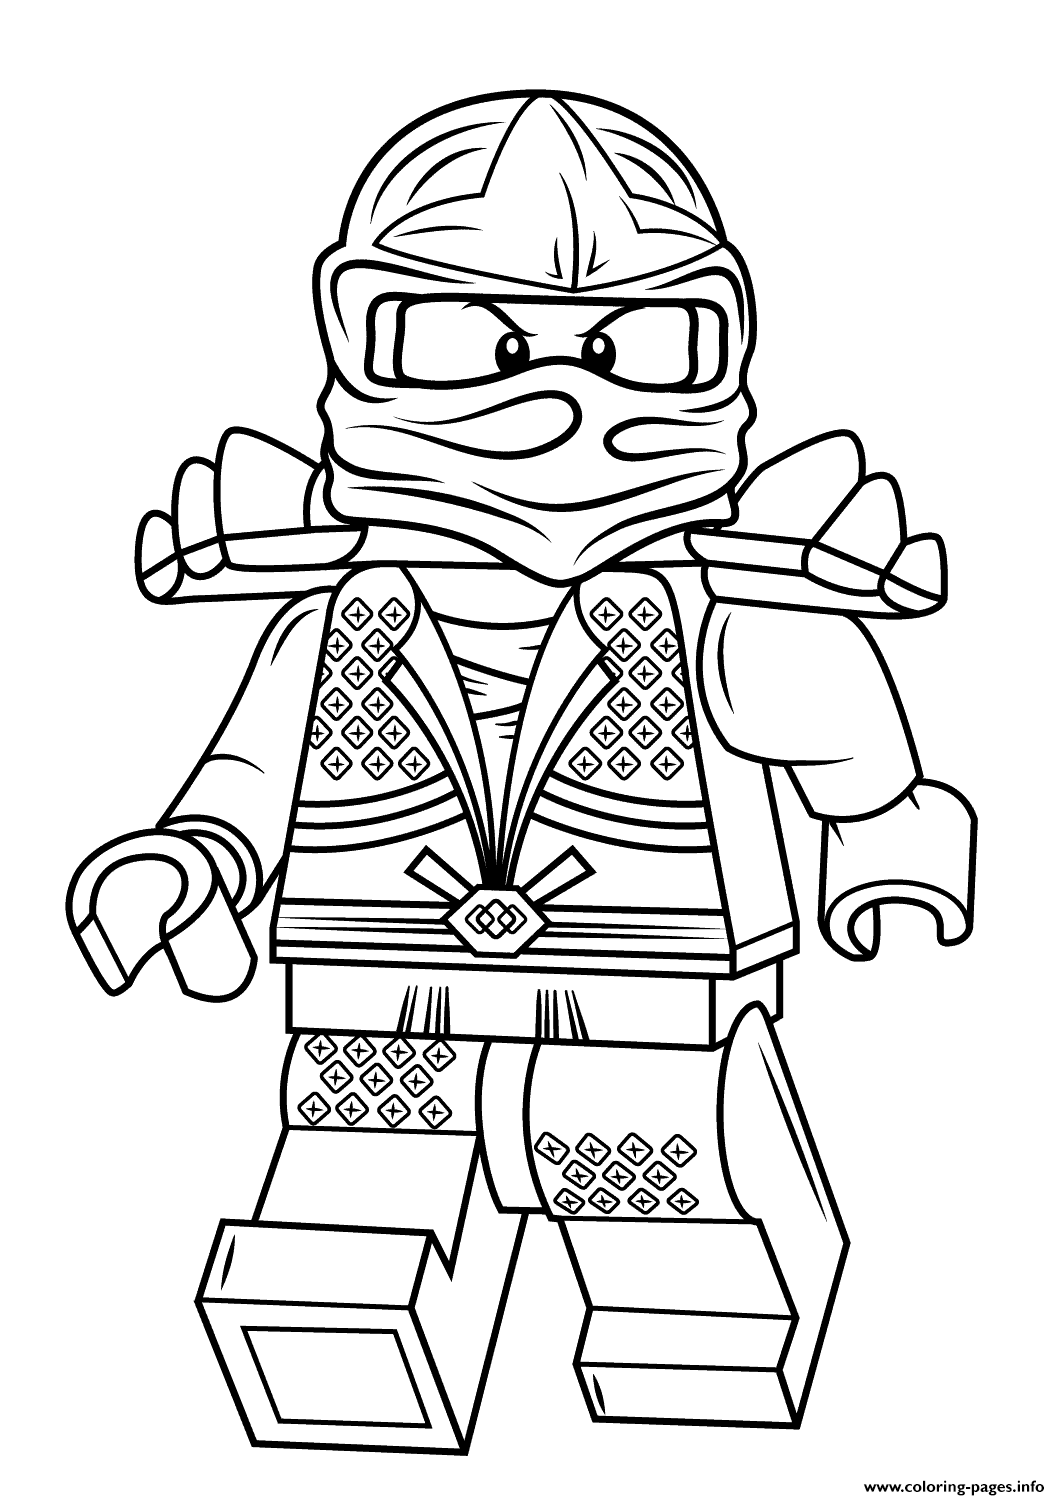 Print Lego Ninjago Lloyd Zx Coloring Pages Lego Coloring Lego Coloring Pages Ninjago Coloring Pages